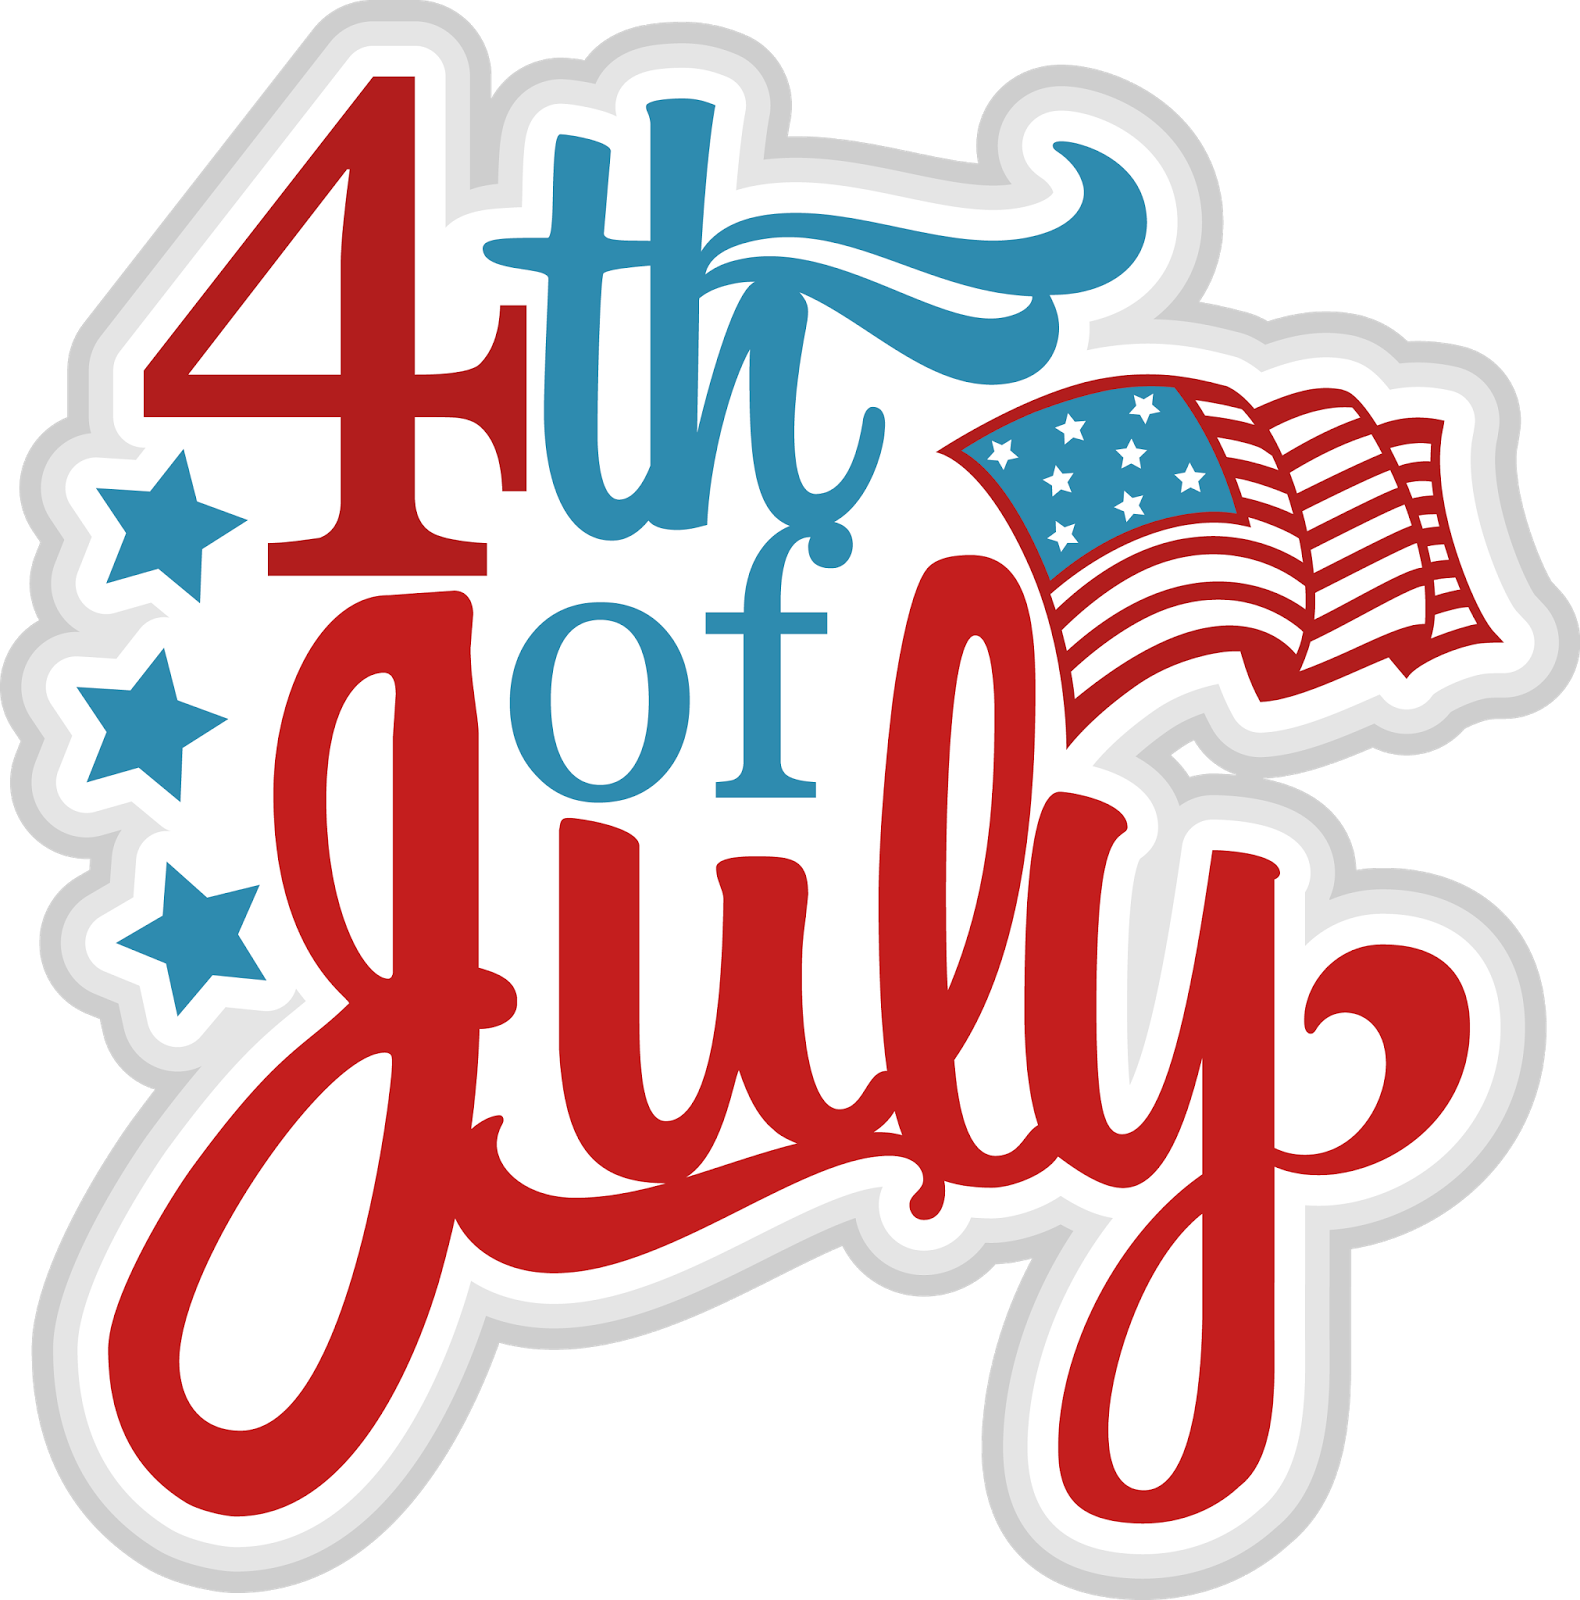 Kids clipart 4th july. Animated happy th of